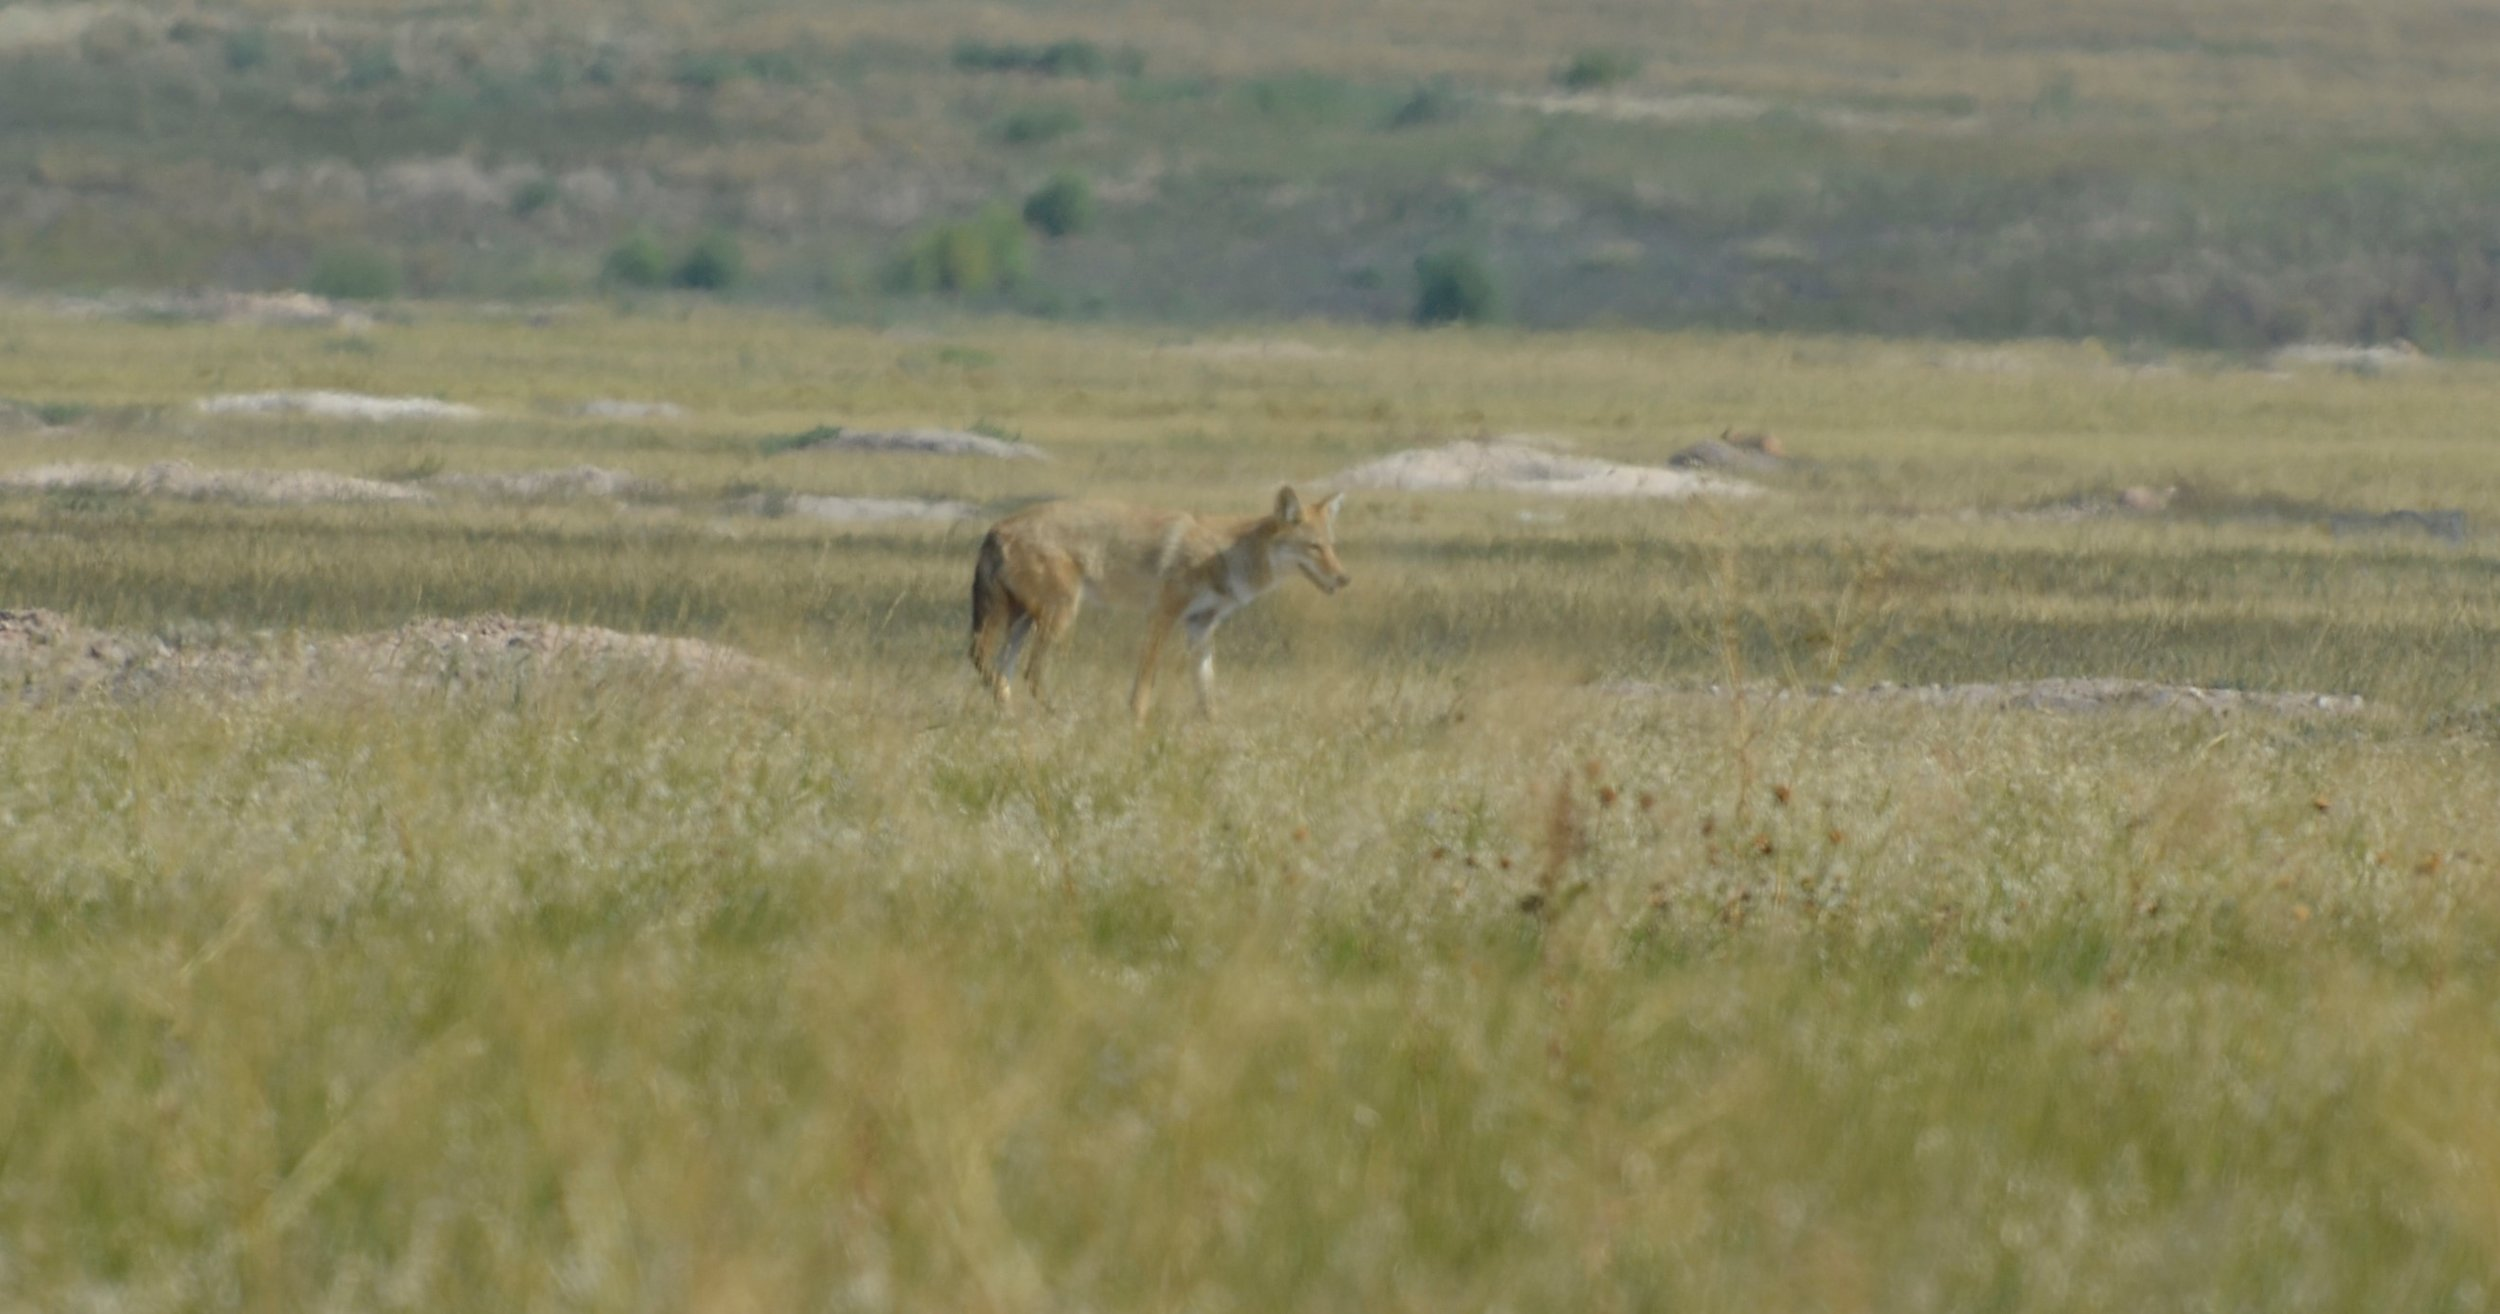 This coyote was hanging out over a prairie dog town, hoping to get lucky